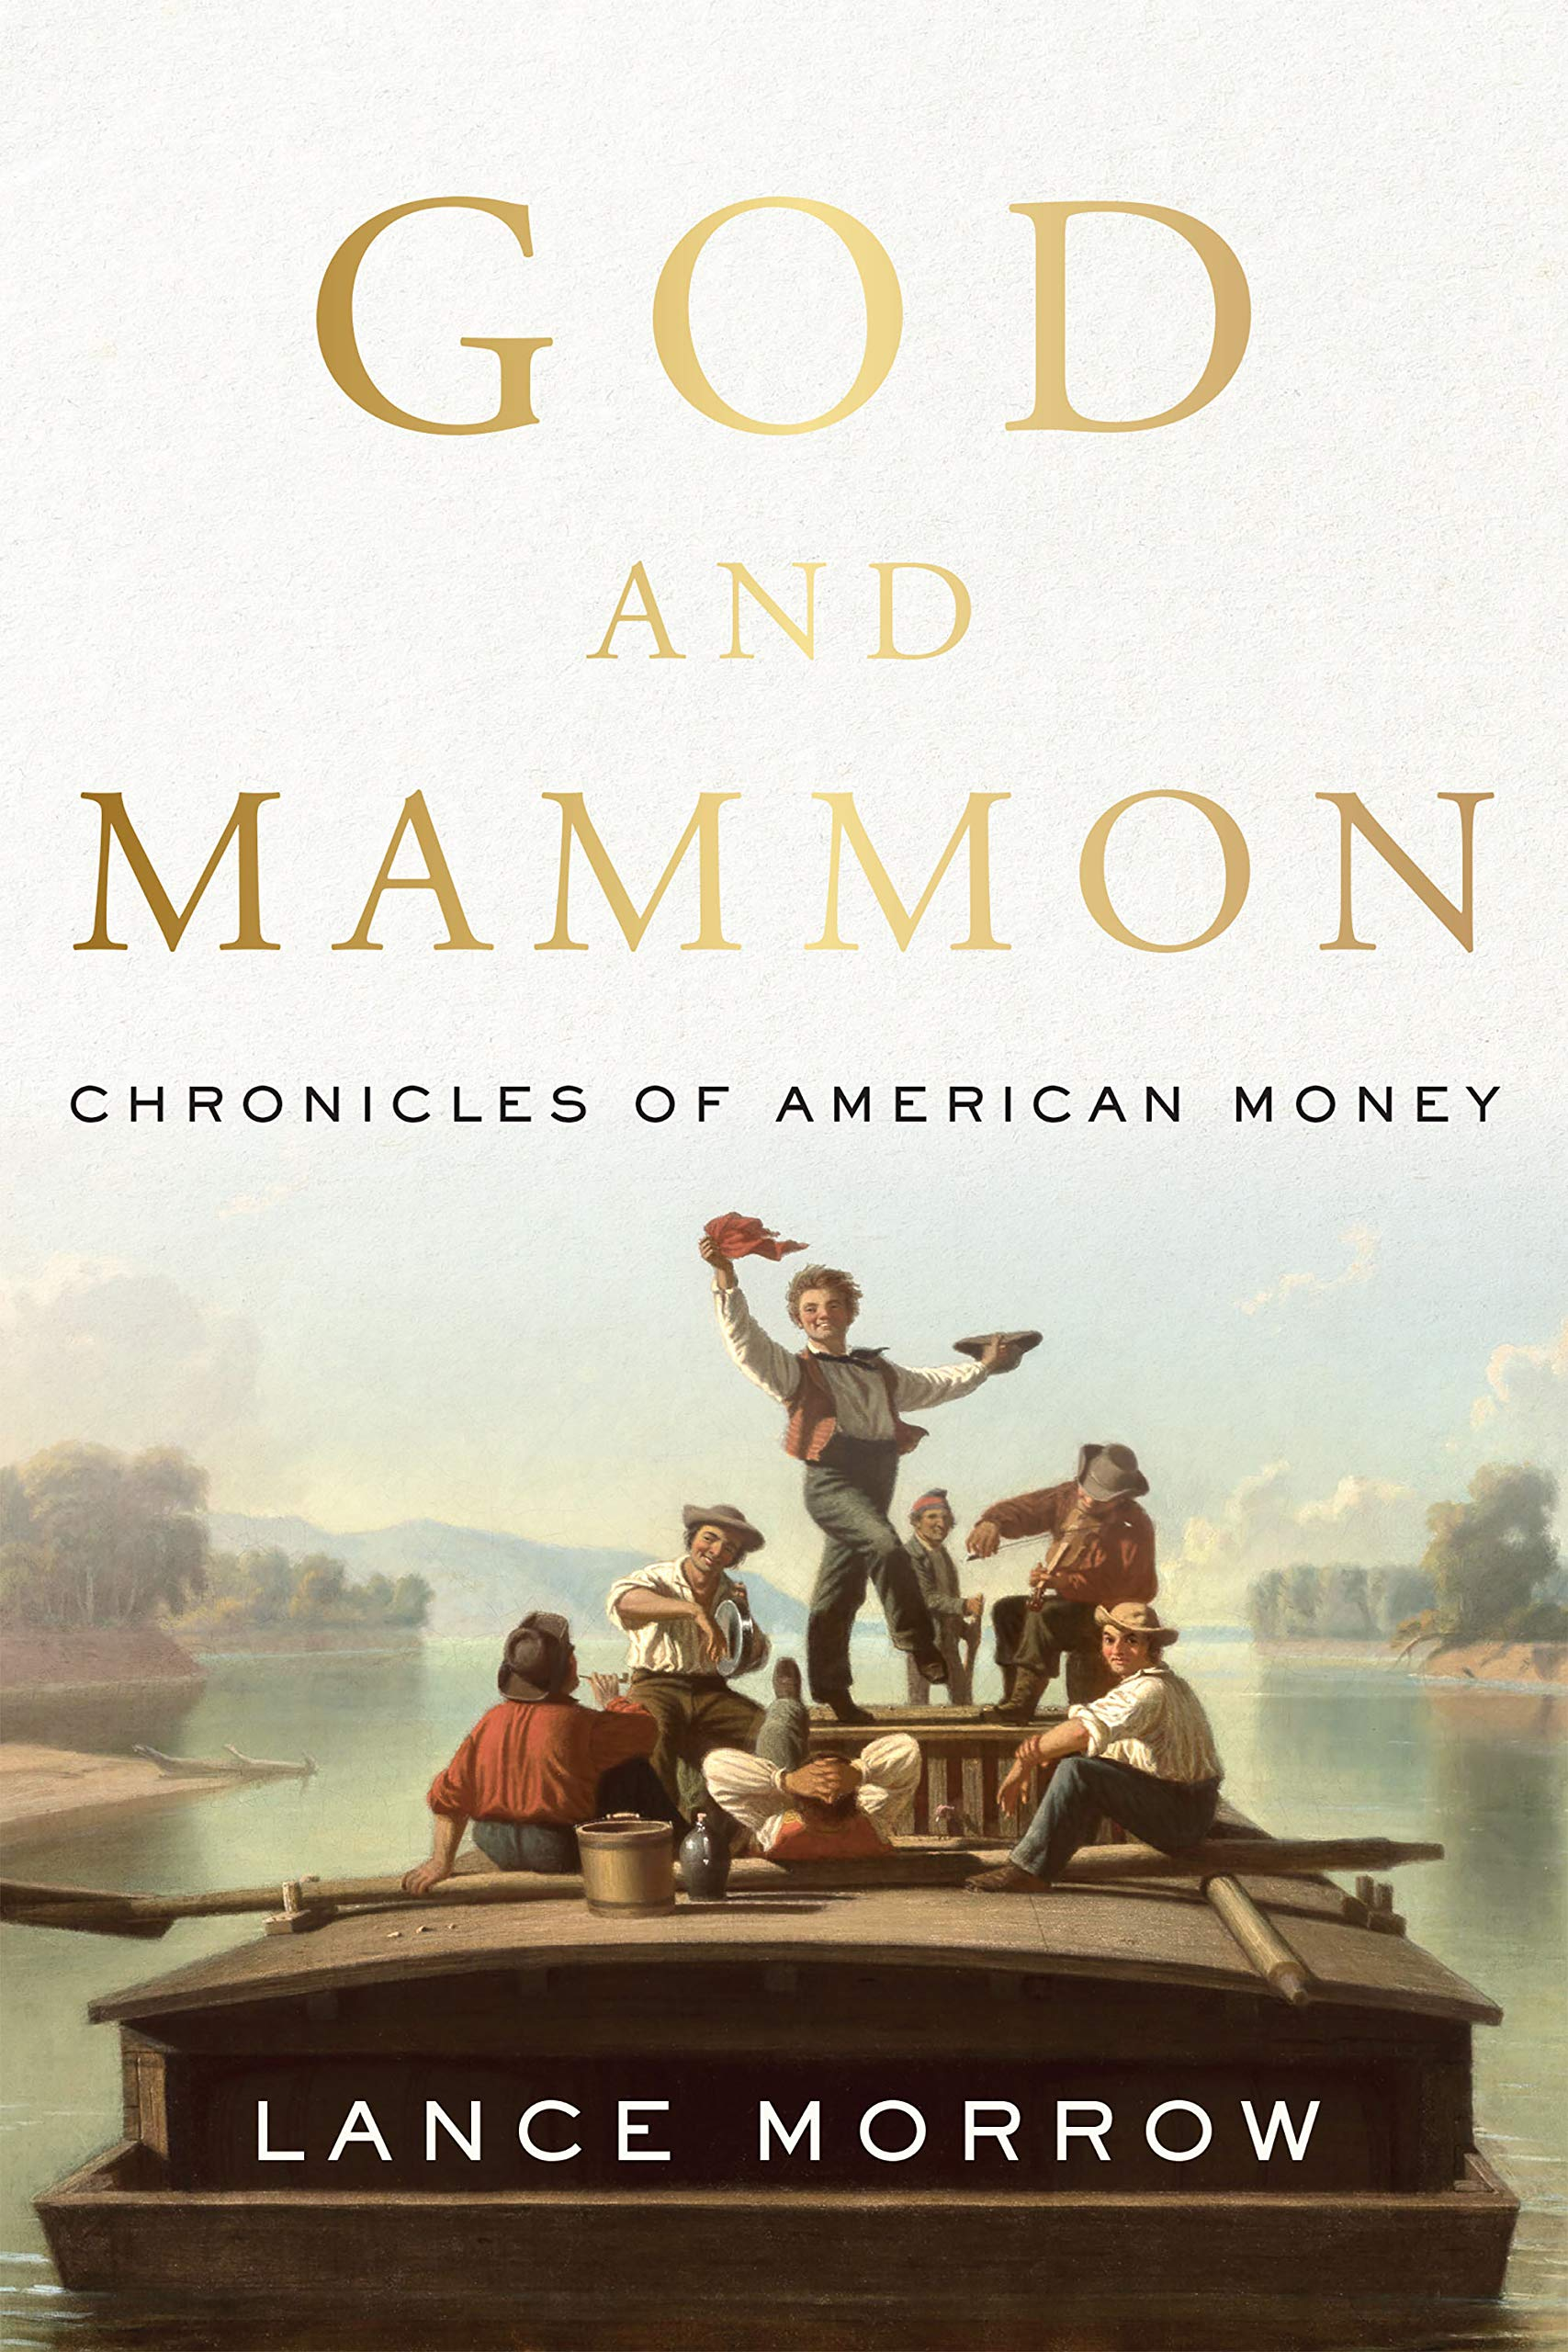 God and Mammon: Chronicles of American Money